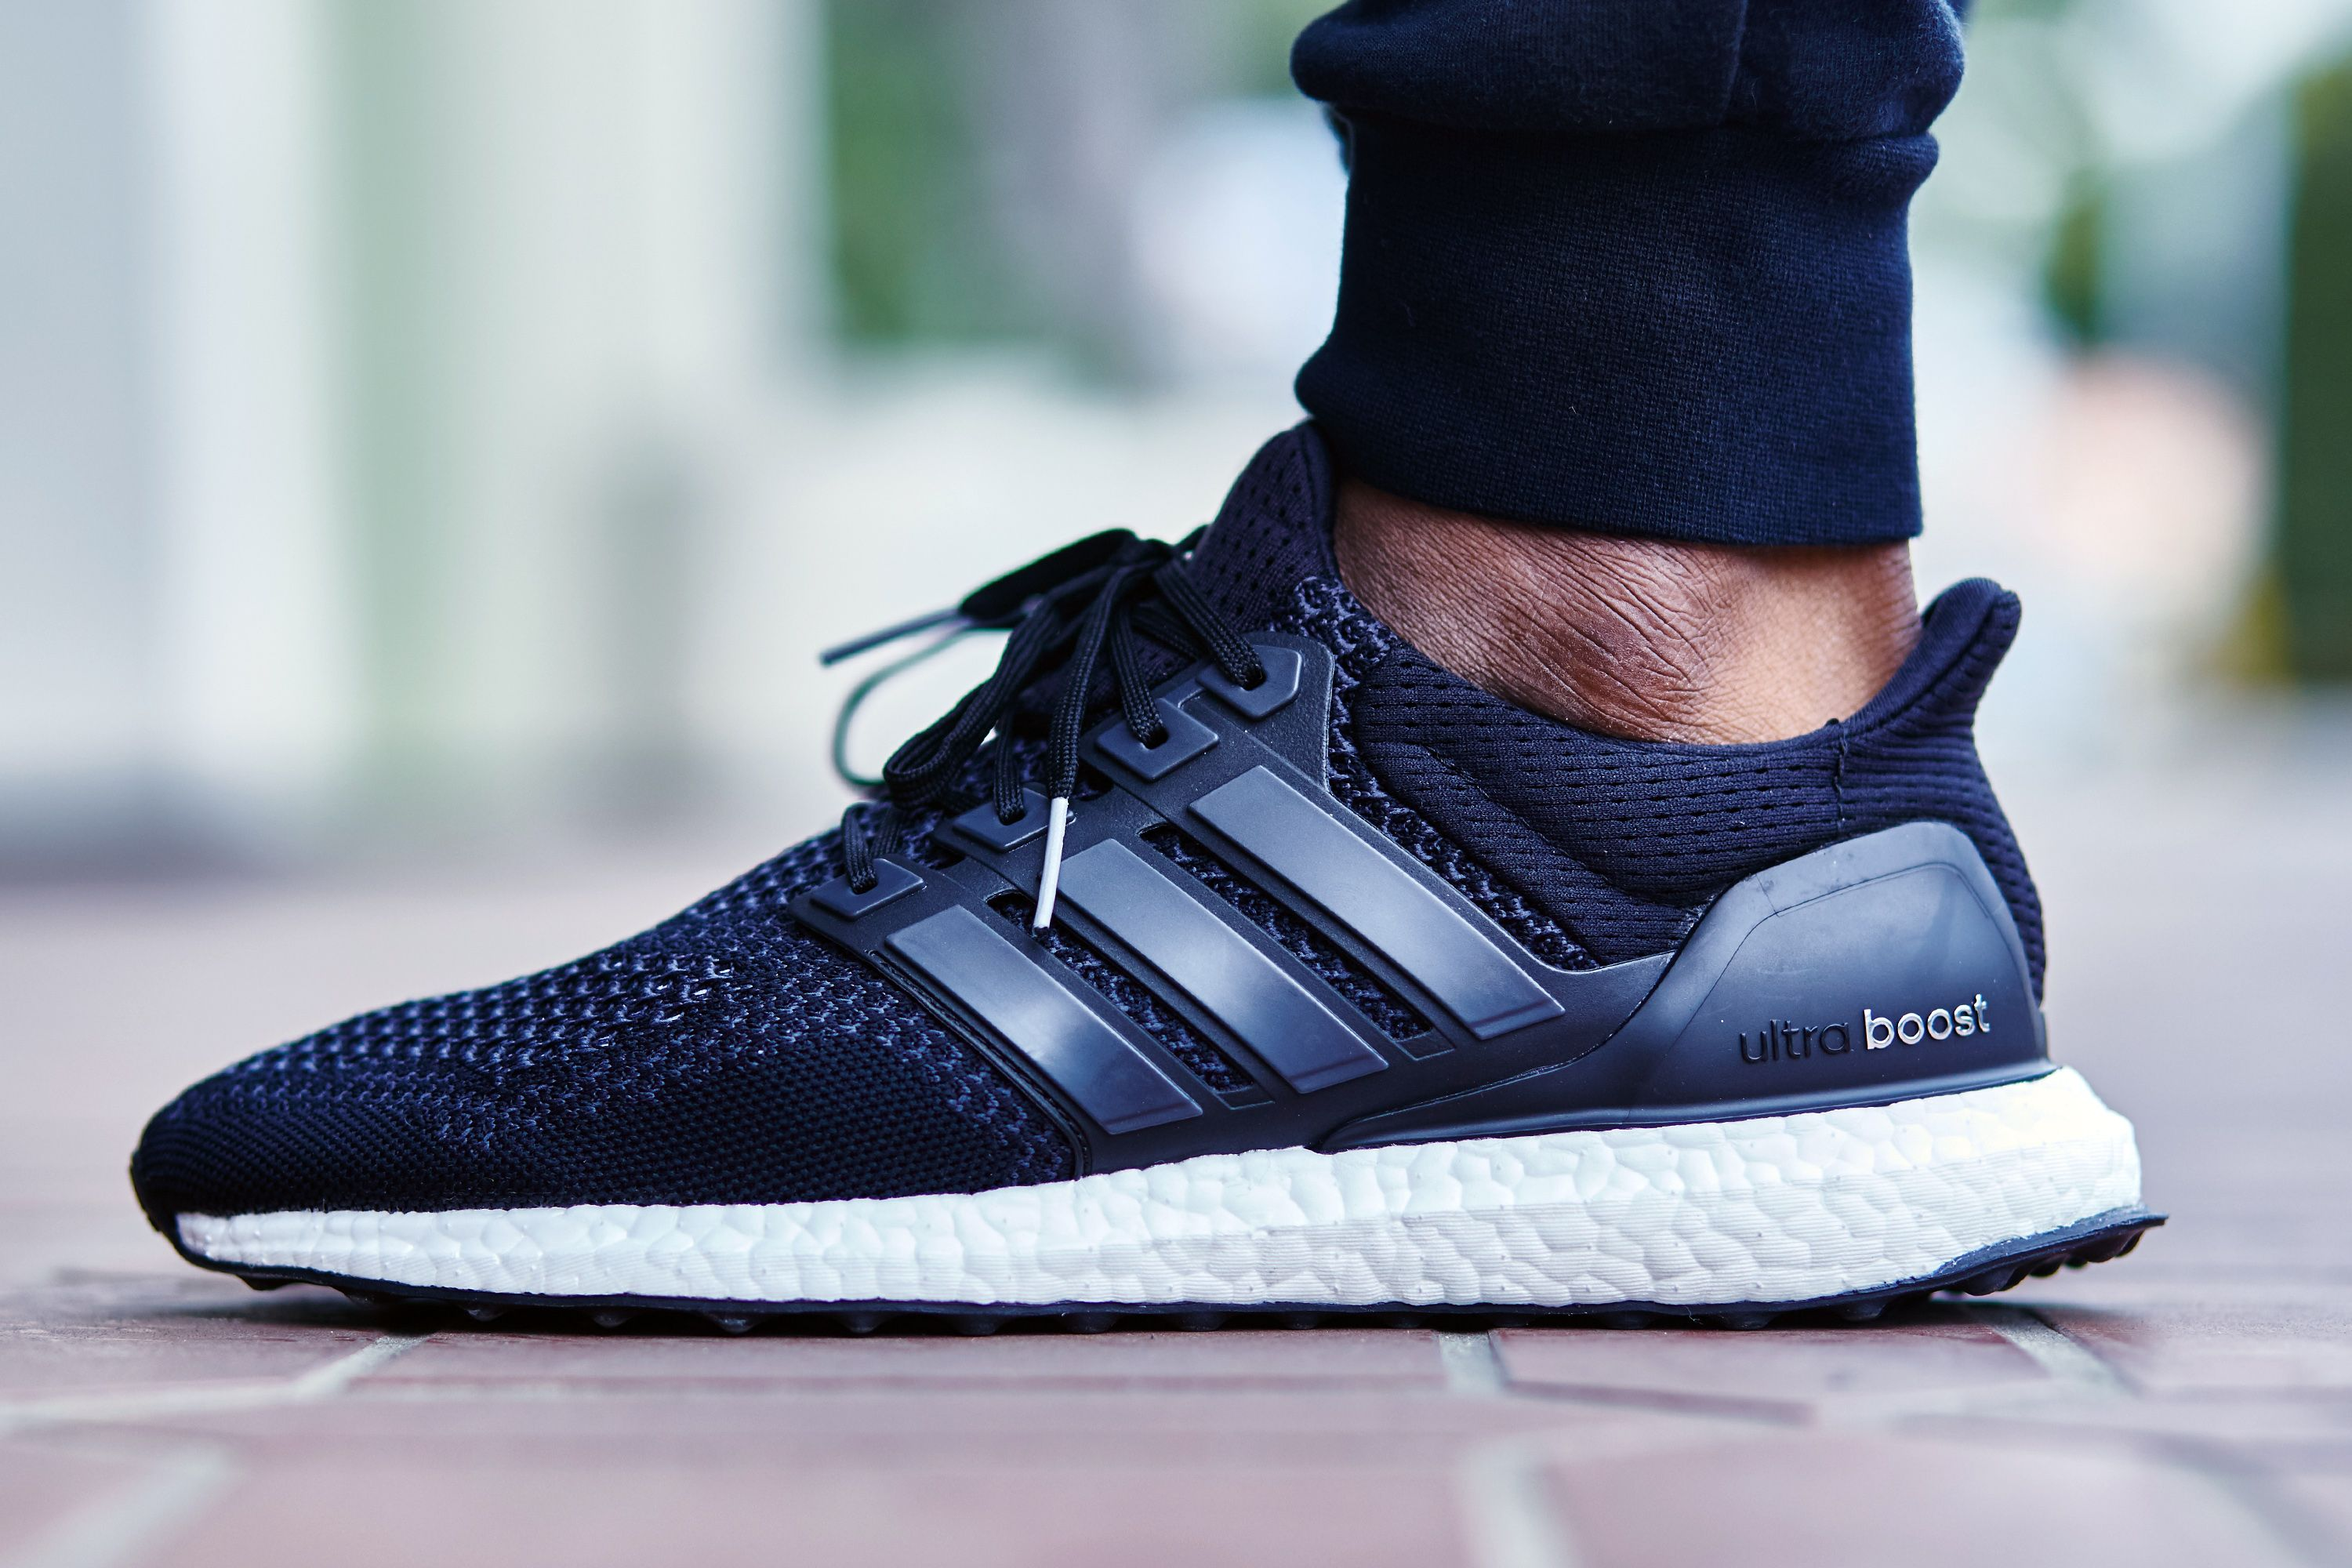 d47cc3074a71a adidas Ultra Boost On-Foot Look